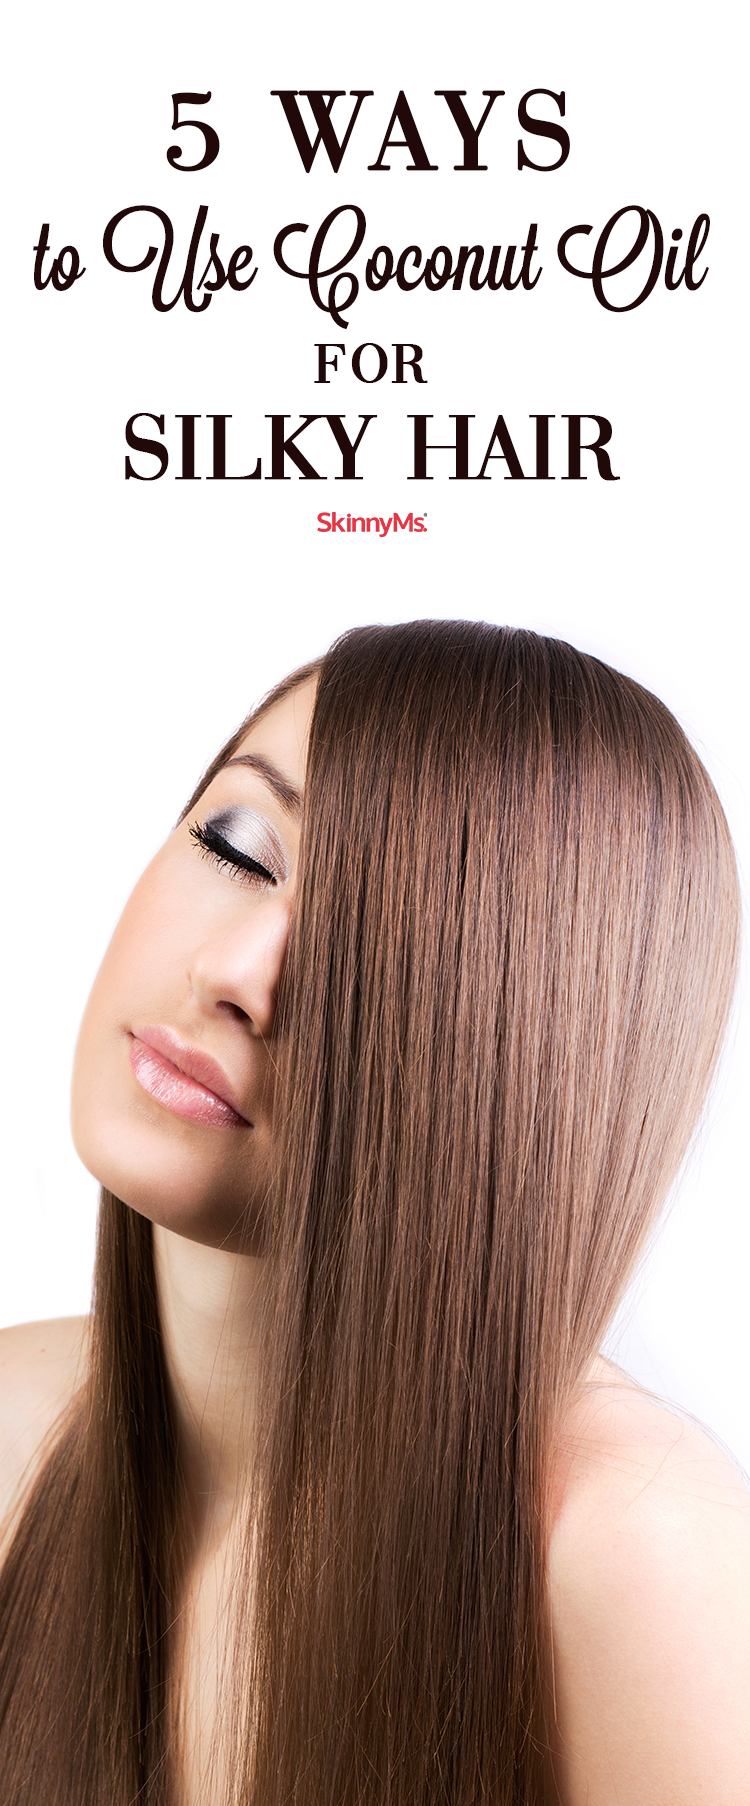 5 Ways To Use Coconut Oil For Silky Hair Cocnut Oil Hair Coconut Oil Hair Silky Hair